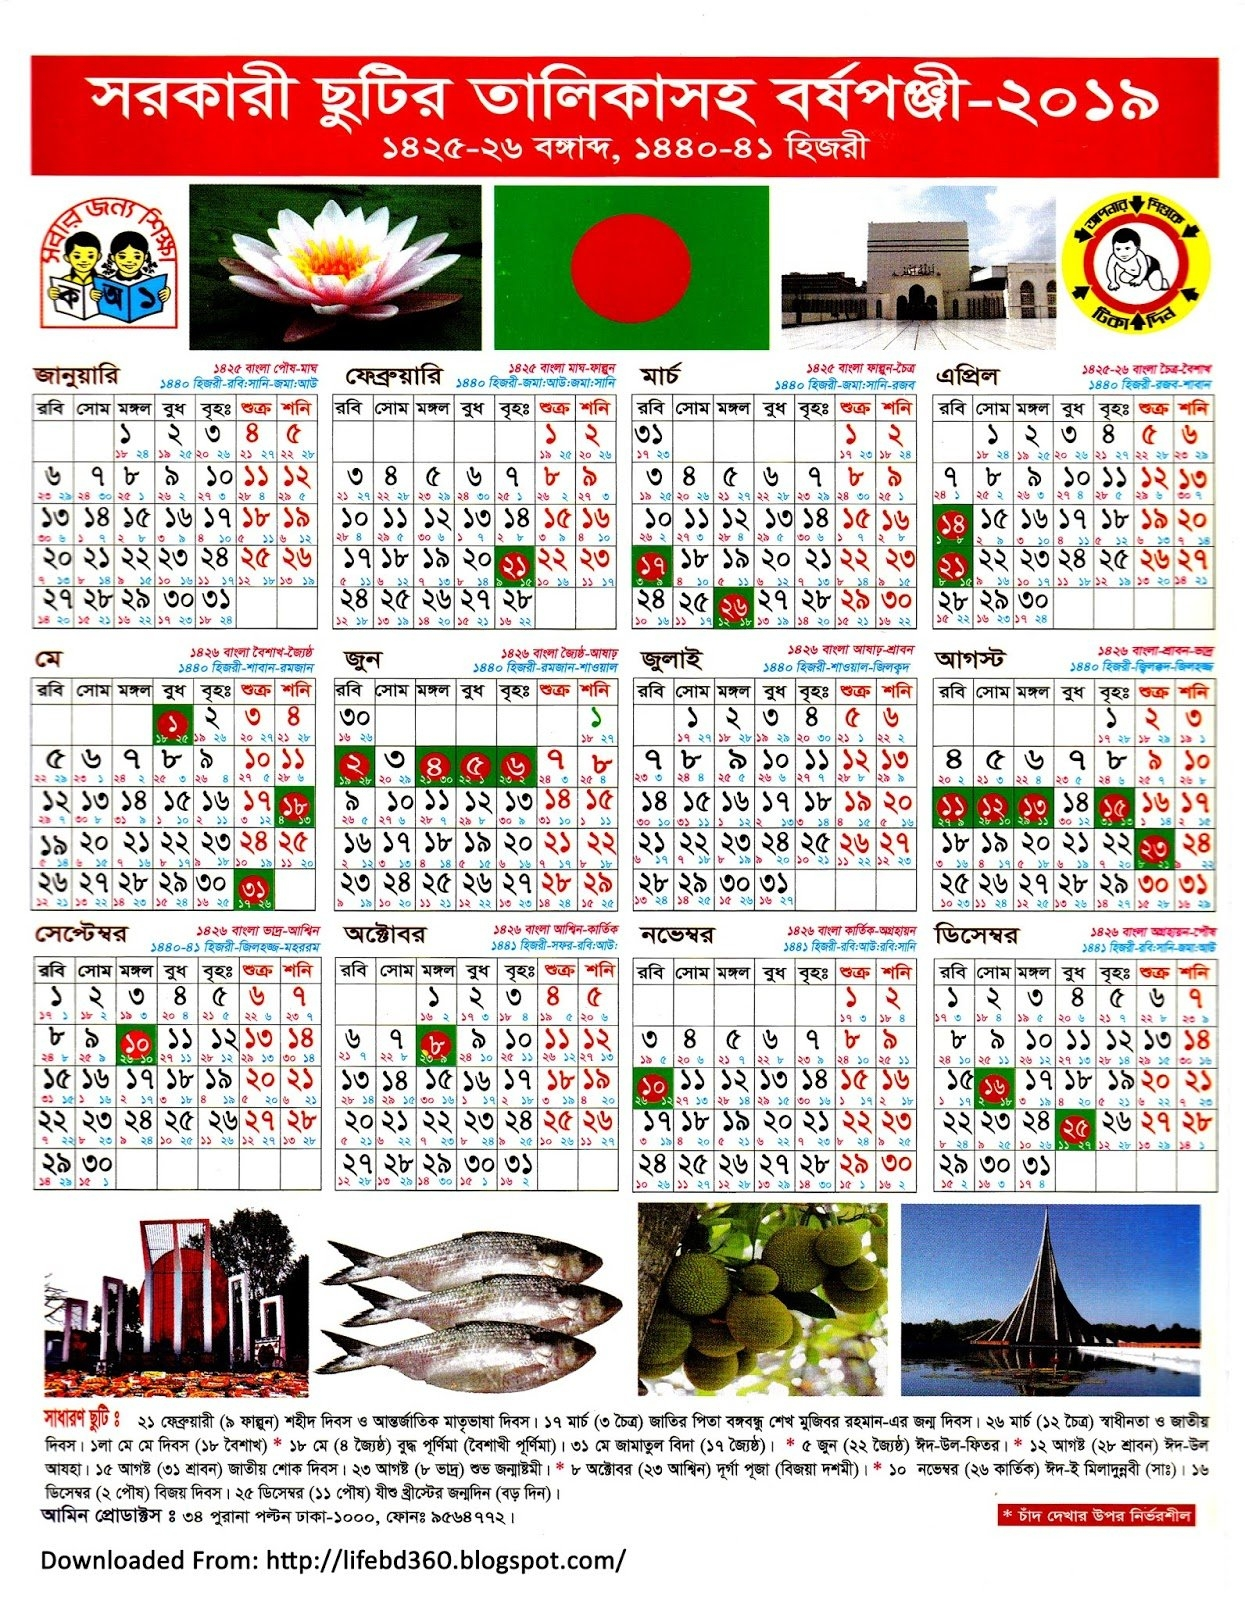 Bangladesh Government Holiday Calendar 2019 | Life In Bangladesh Calendar 2019 Government